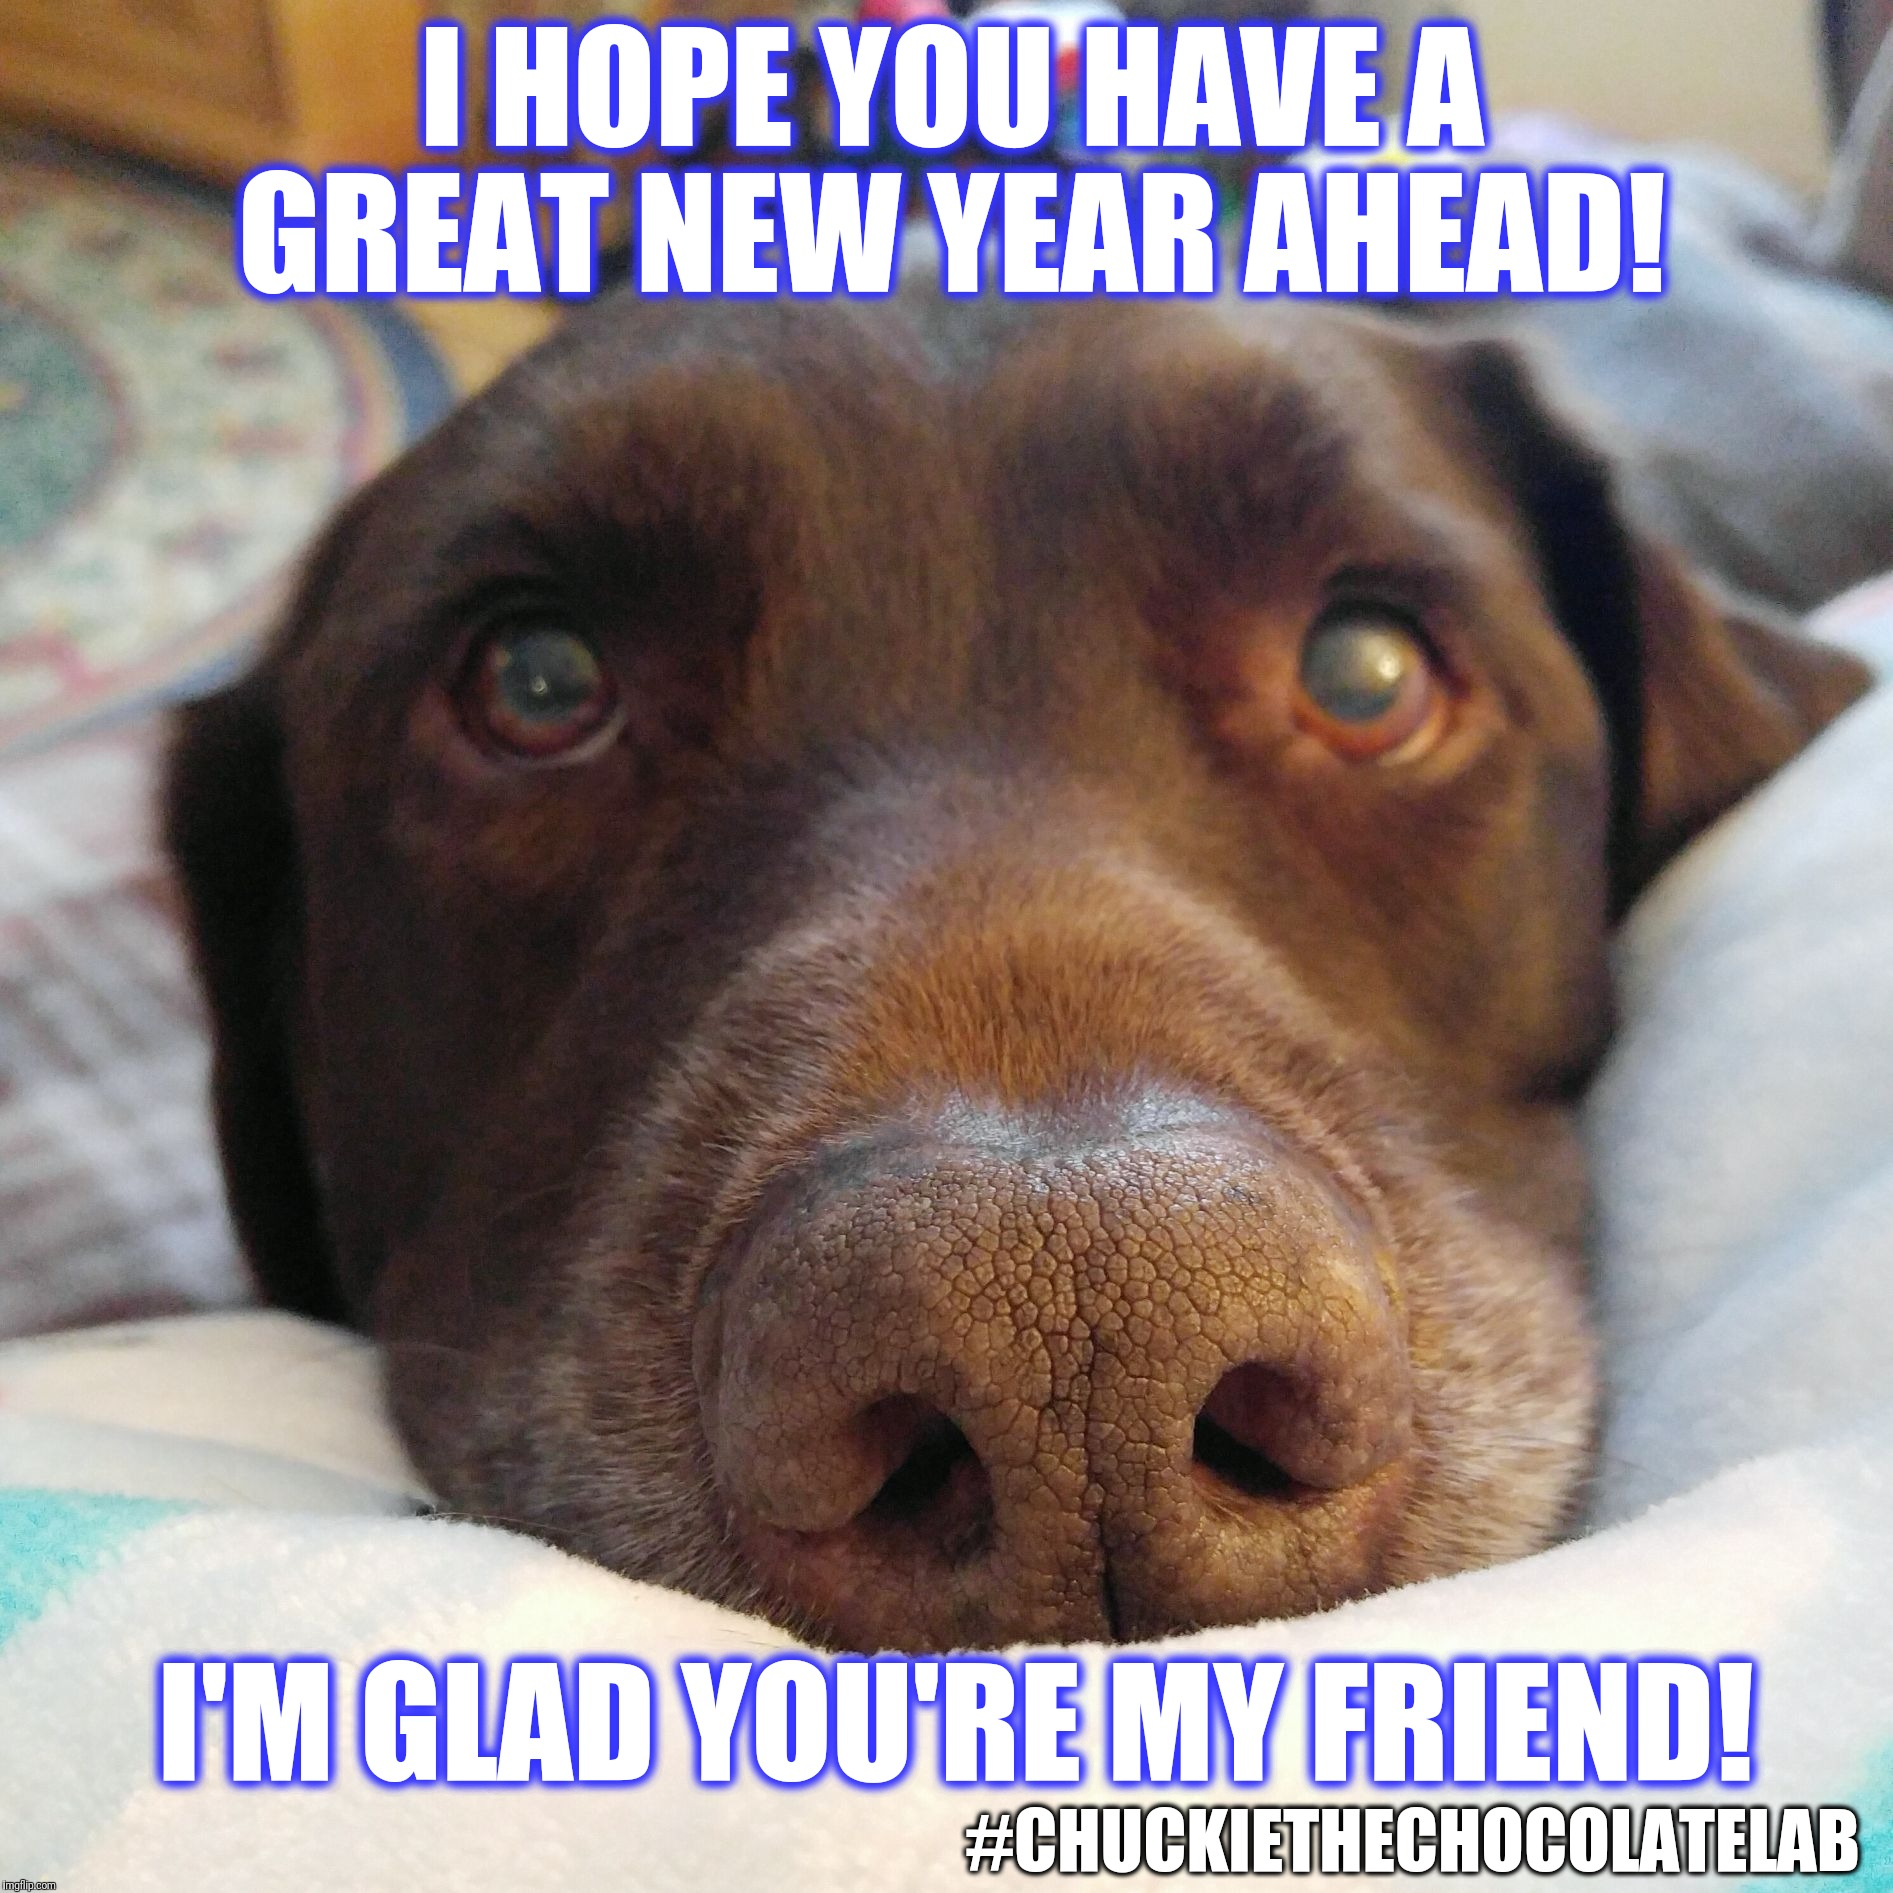 Have a great new year, friends!  | I HOPE YOU HAVE A GREAT NEW YEAR AHEAD! I'M GLAD YOU'RE MY FRIEND! #CHUCKIETHECHOCOLATELAB | image tagged in chuckie the chocolate lab teamchuckie,friends,new year,memes,dogs | made w/ Imgflip meme maker